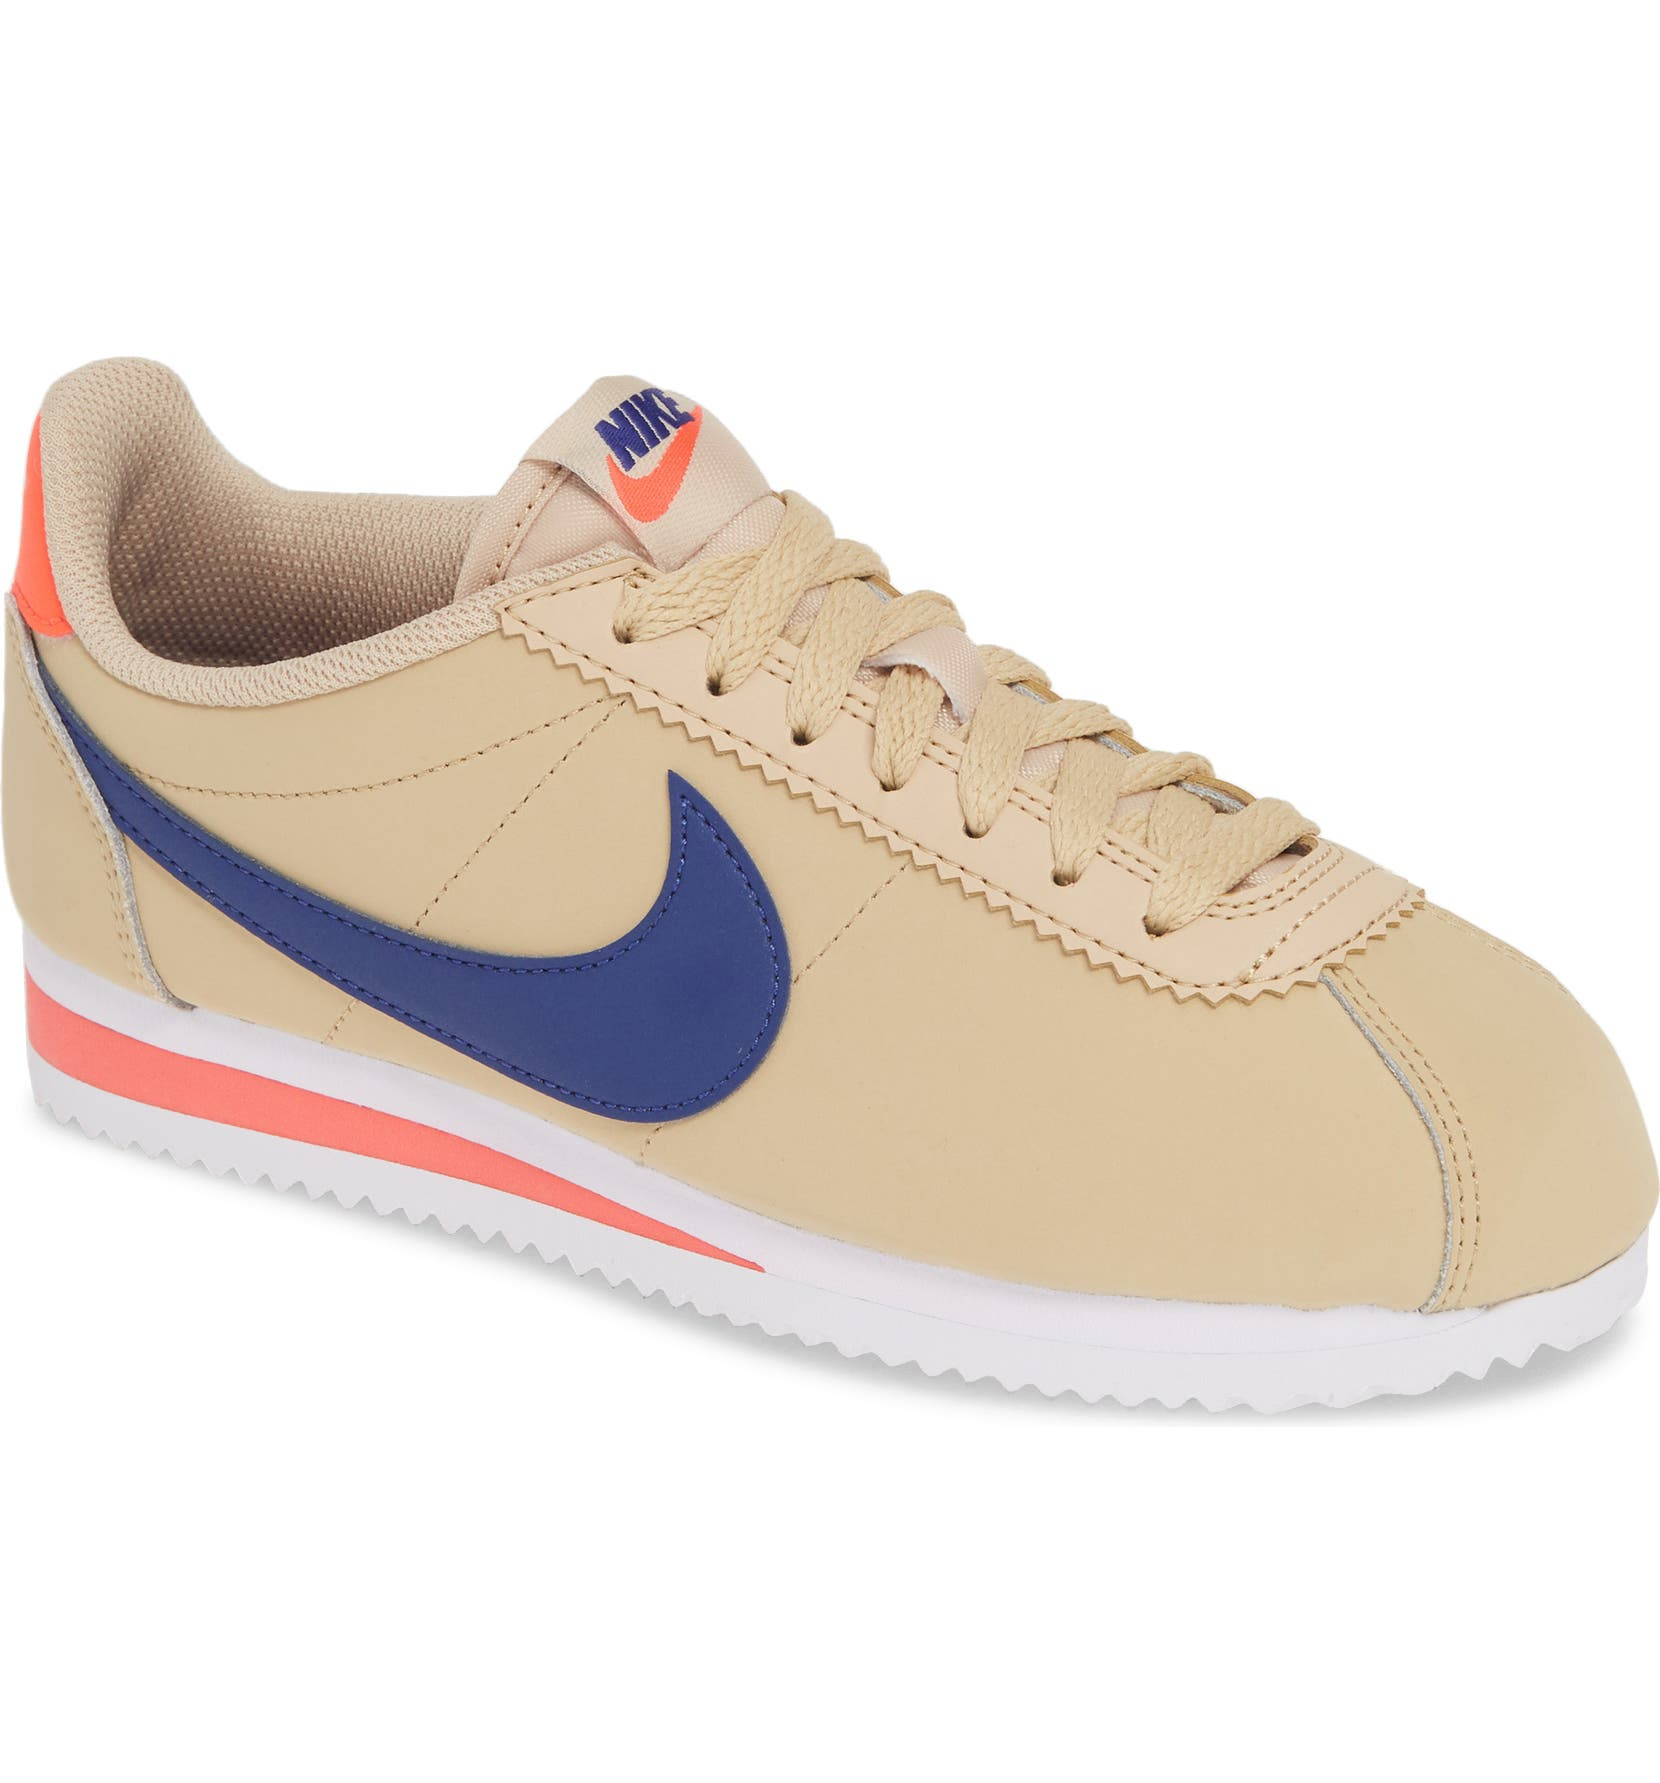 sports shoes 0dc88 f9fb9 Nike Classic Cortez Sneaker (Women)   Nordstrom